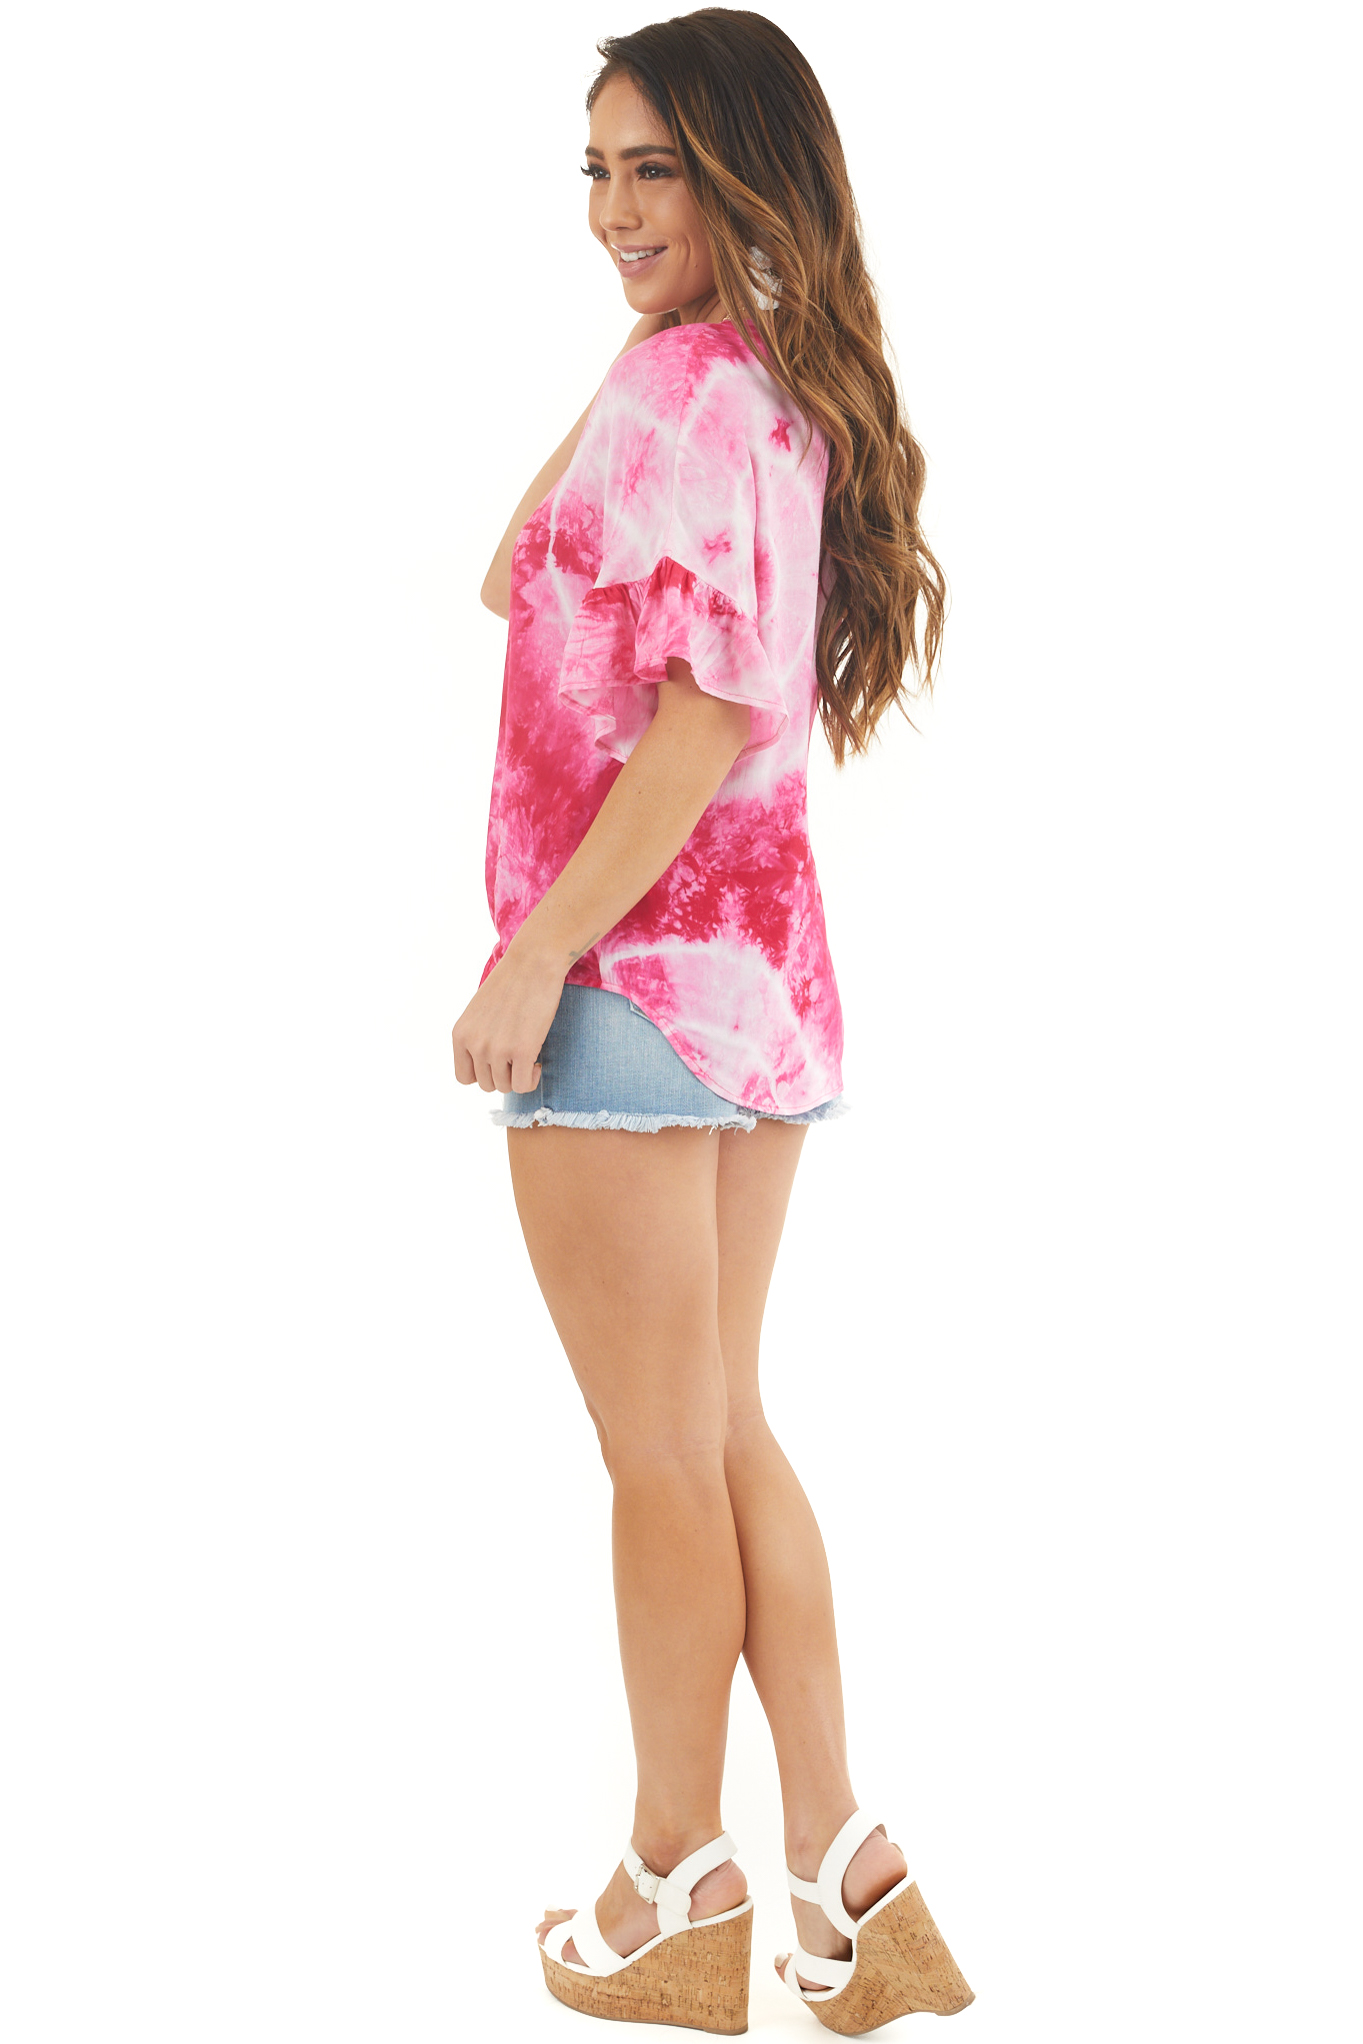 Hot Pink Tie Dye Top with Button Up Detail and Front Tie